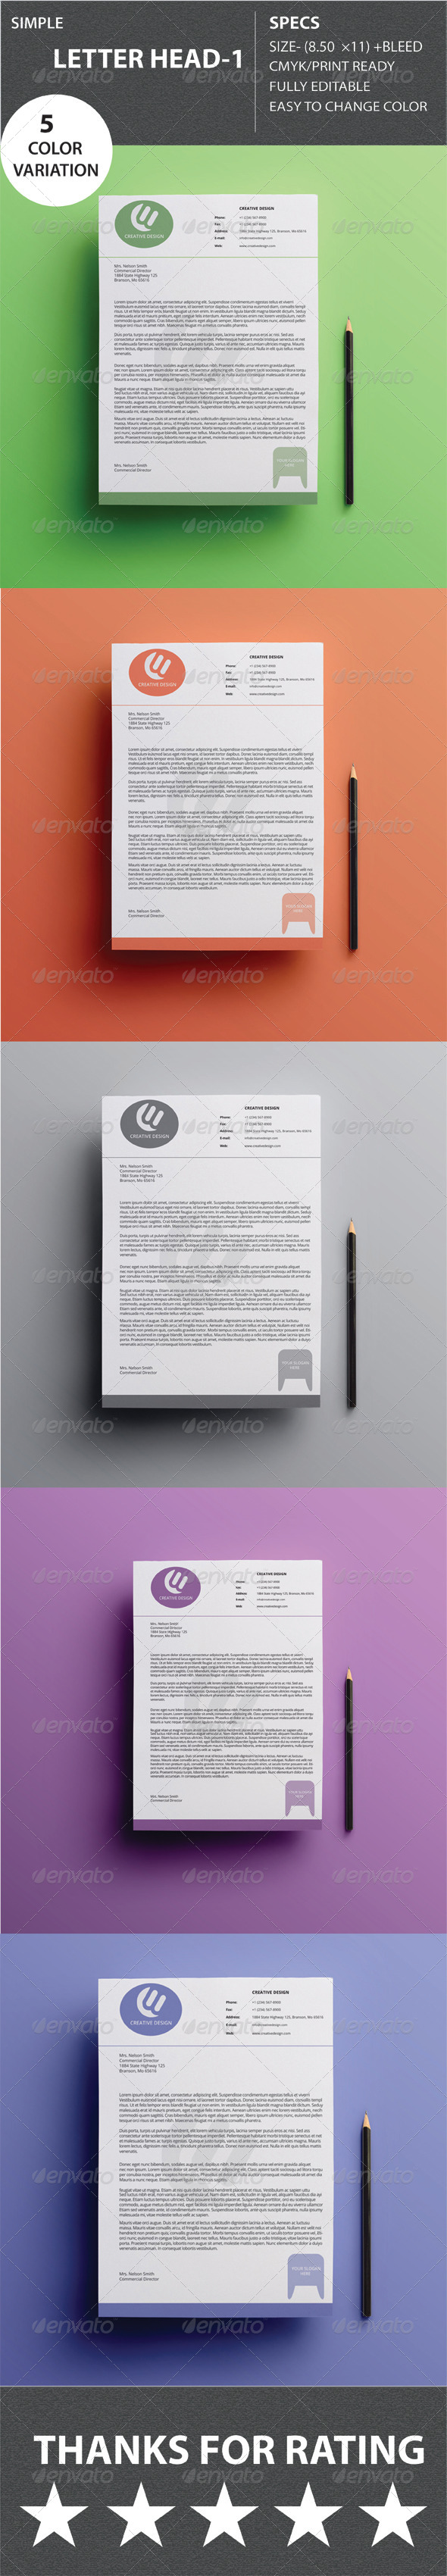 GraphicRiver Simple Letter Head 1 8611258